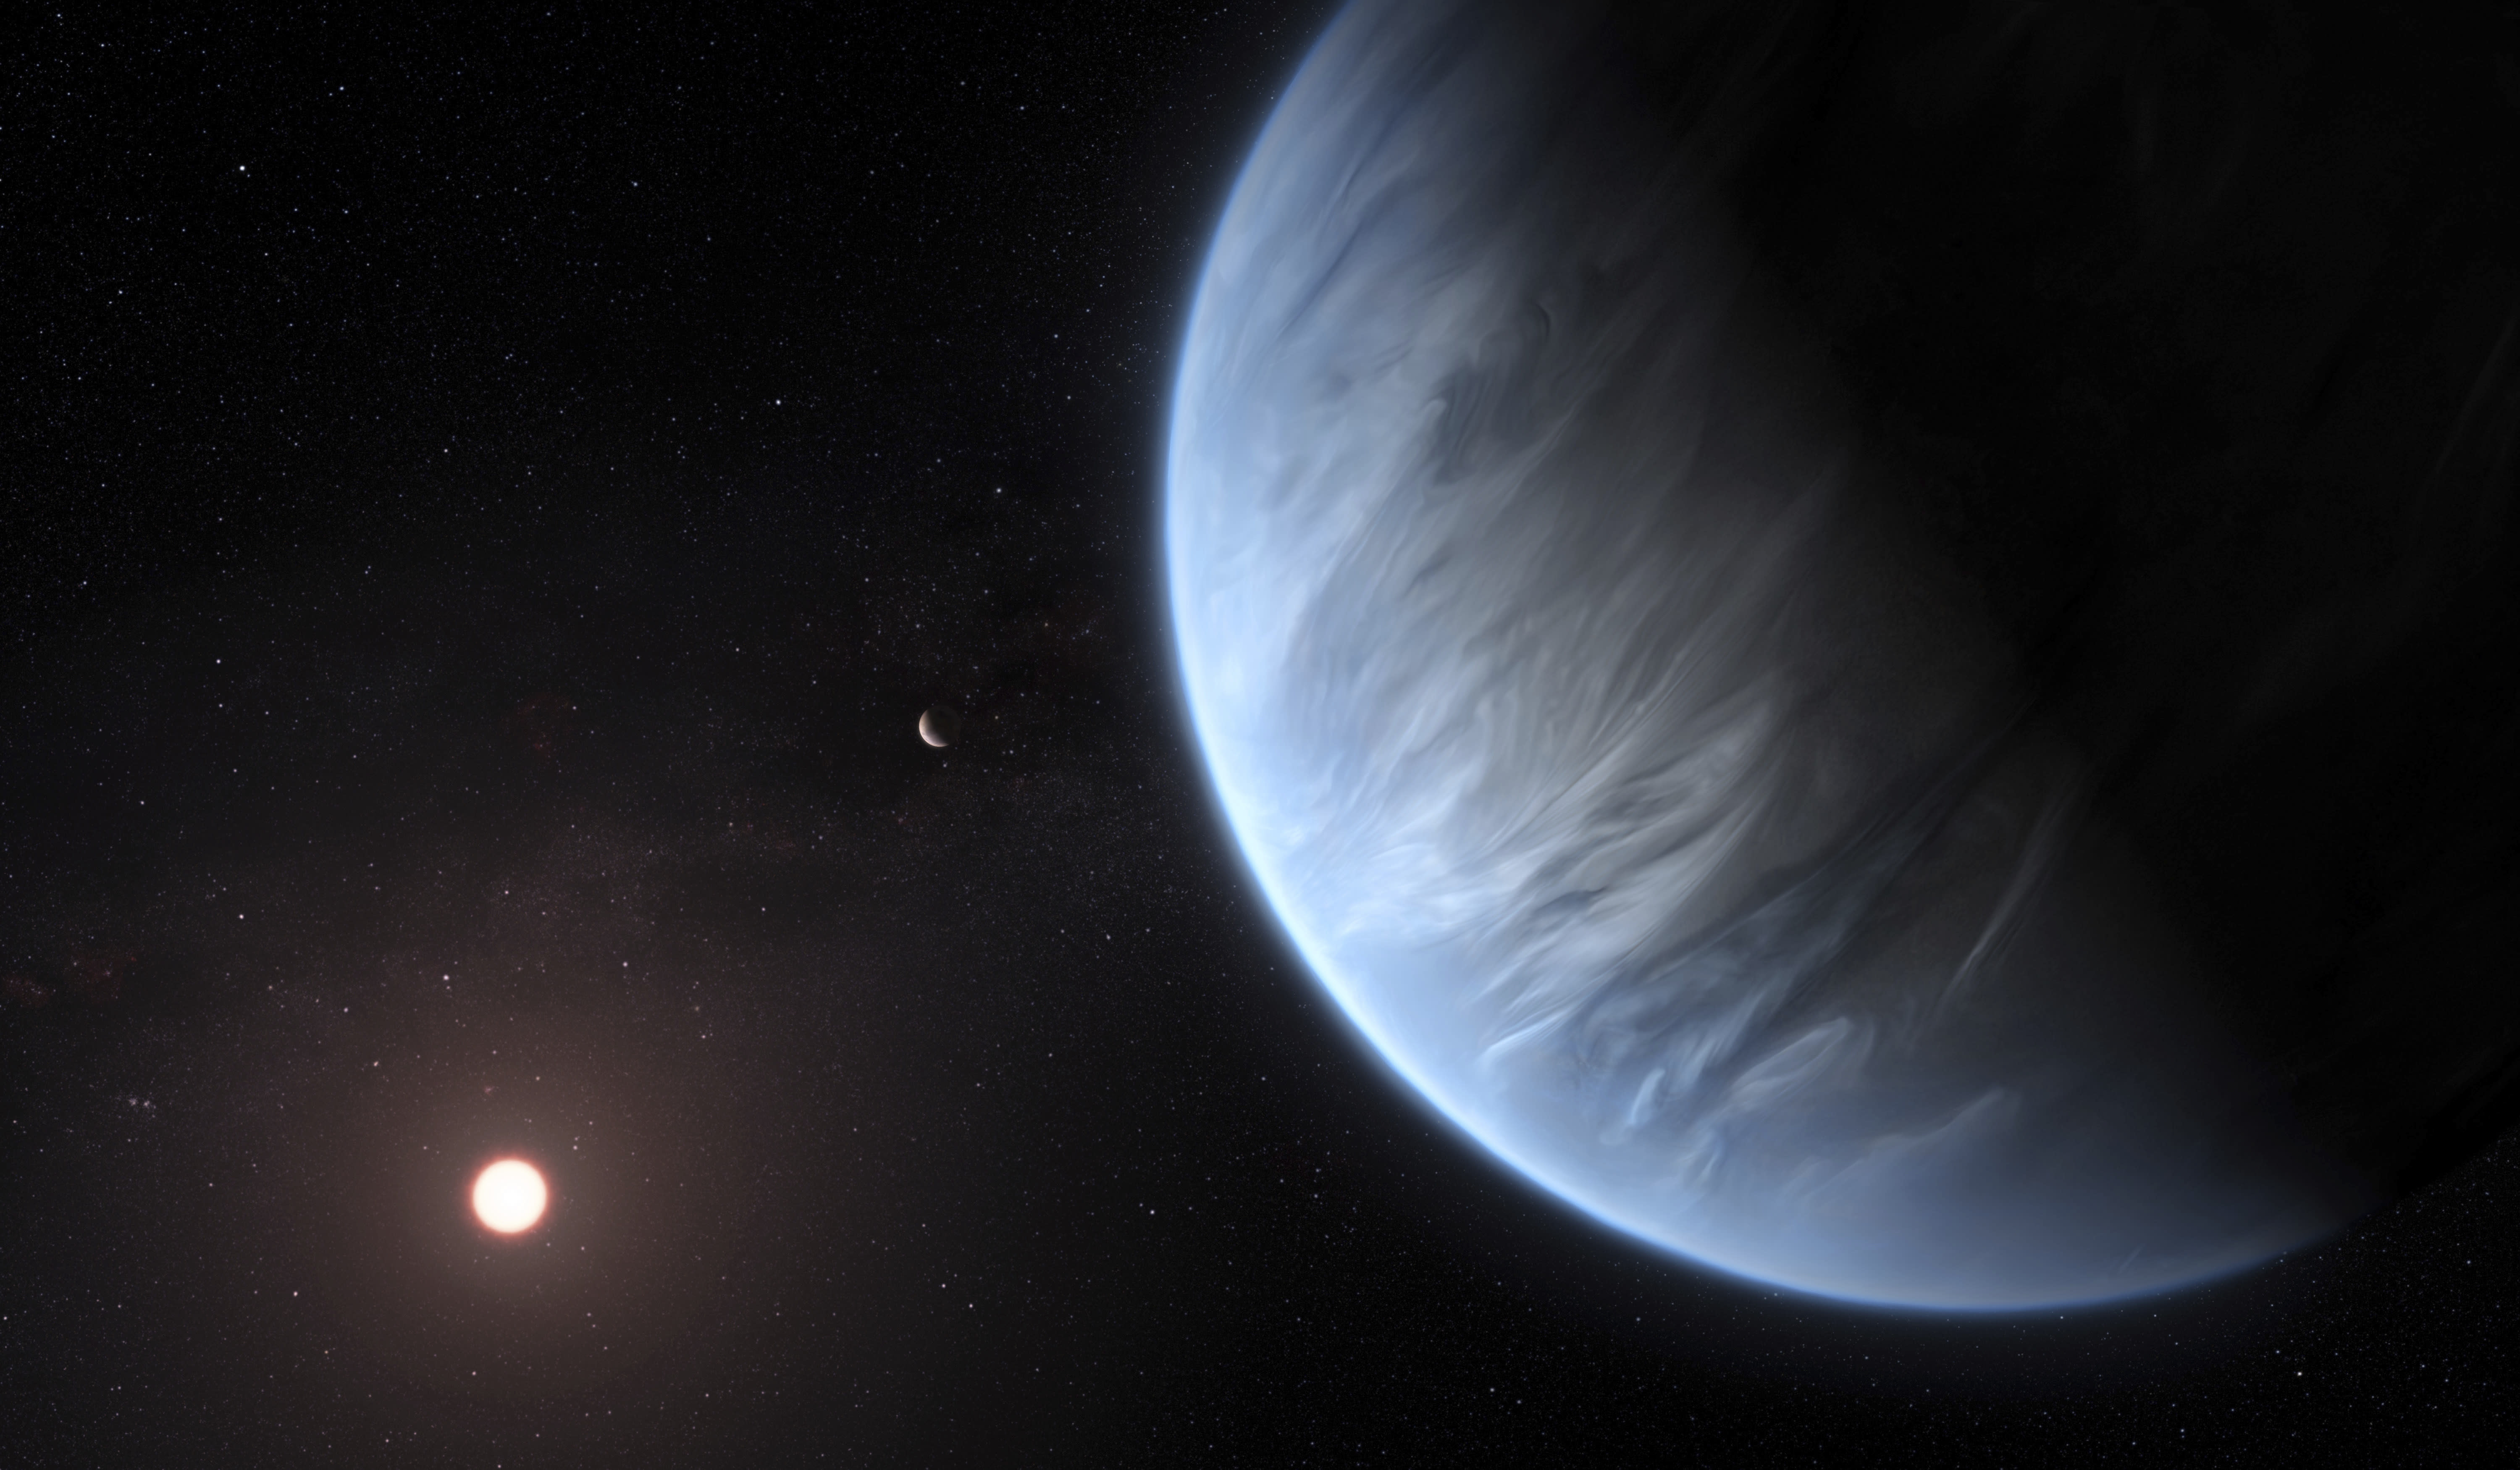 Hubble Finds First Water Vapor on Habitable-Zone Exoplanet